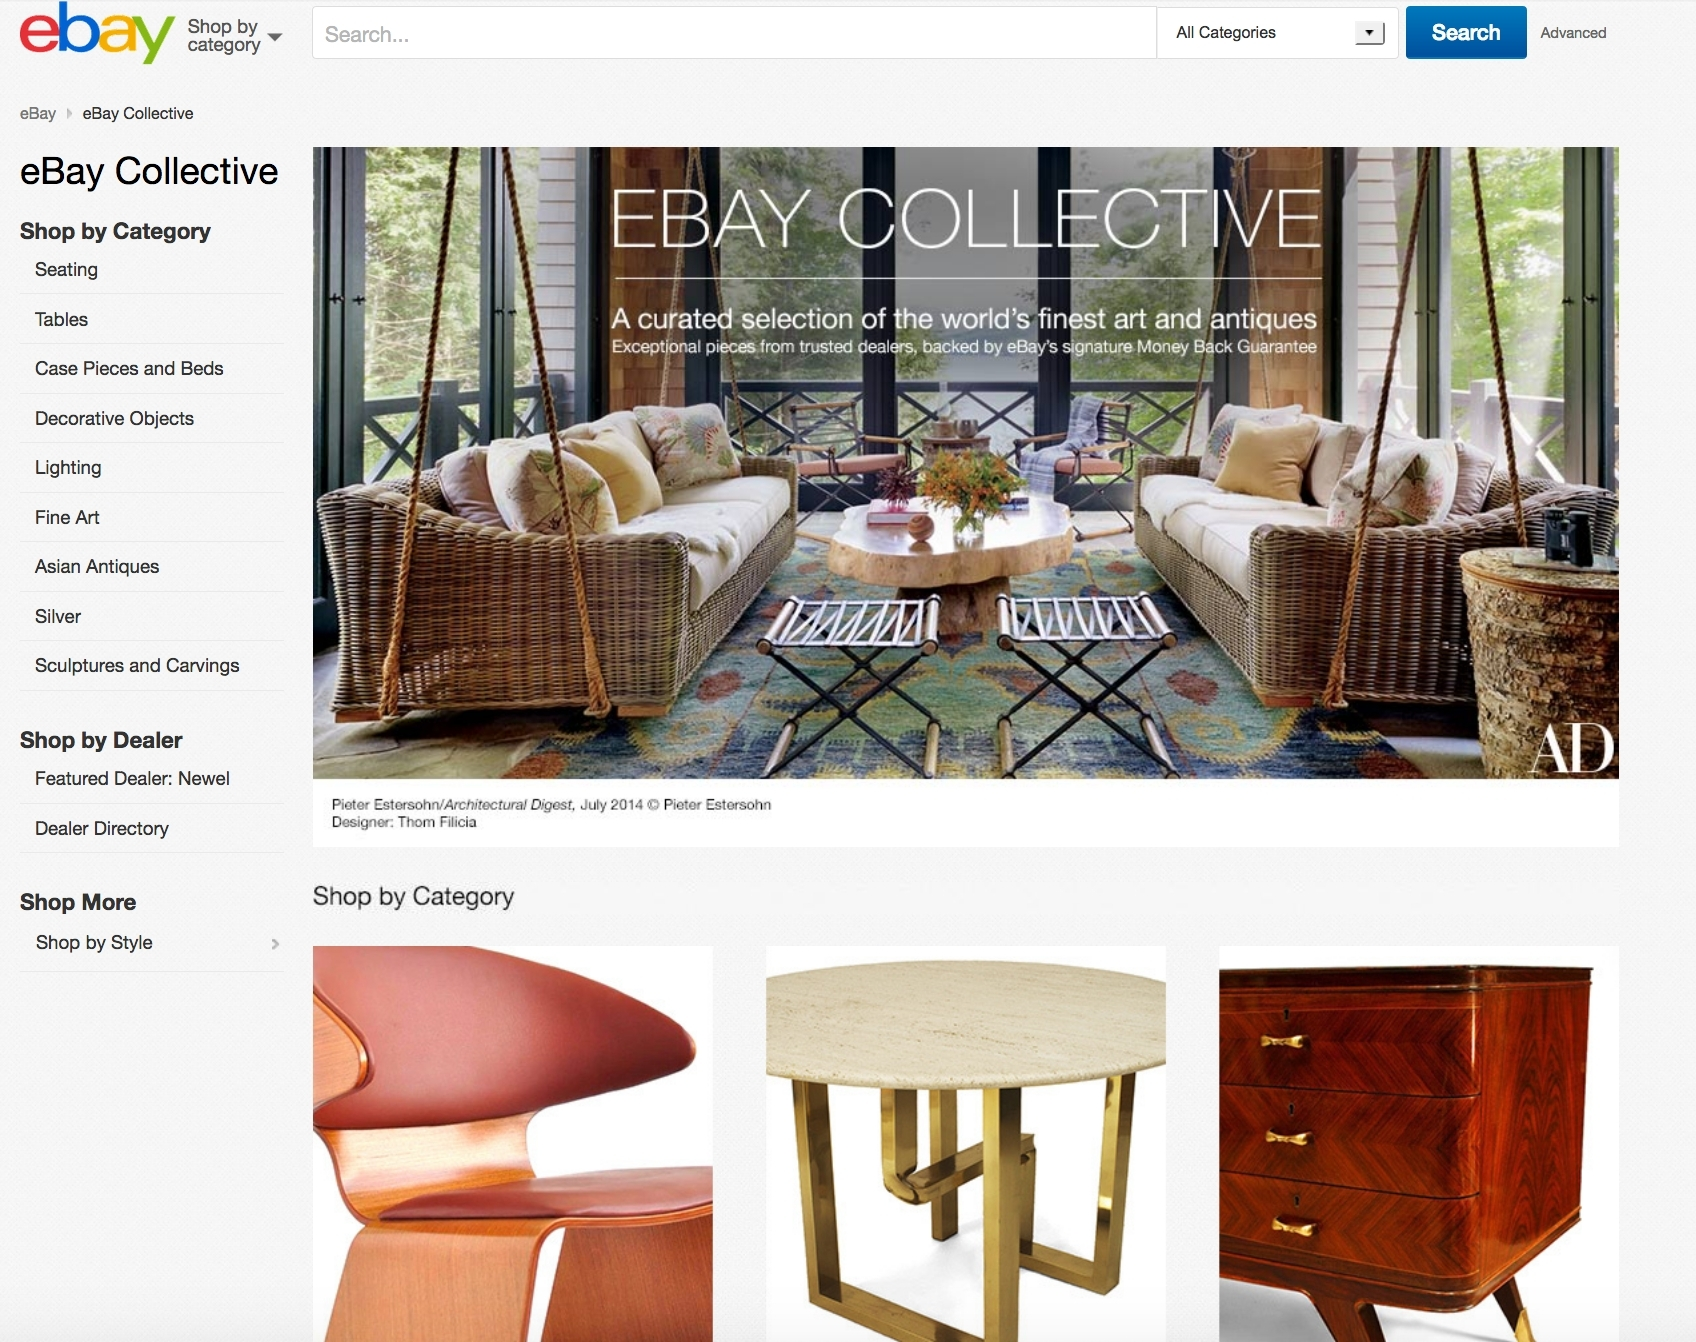 eBay Collective (www.ebay.com/Collective) (Photo: Business Wire)